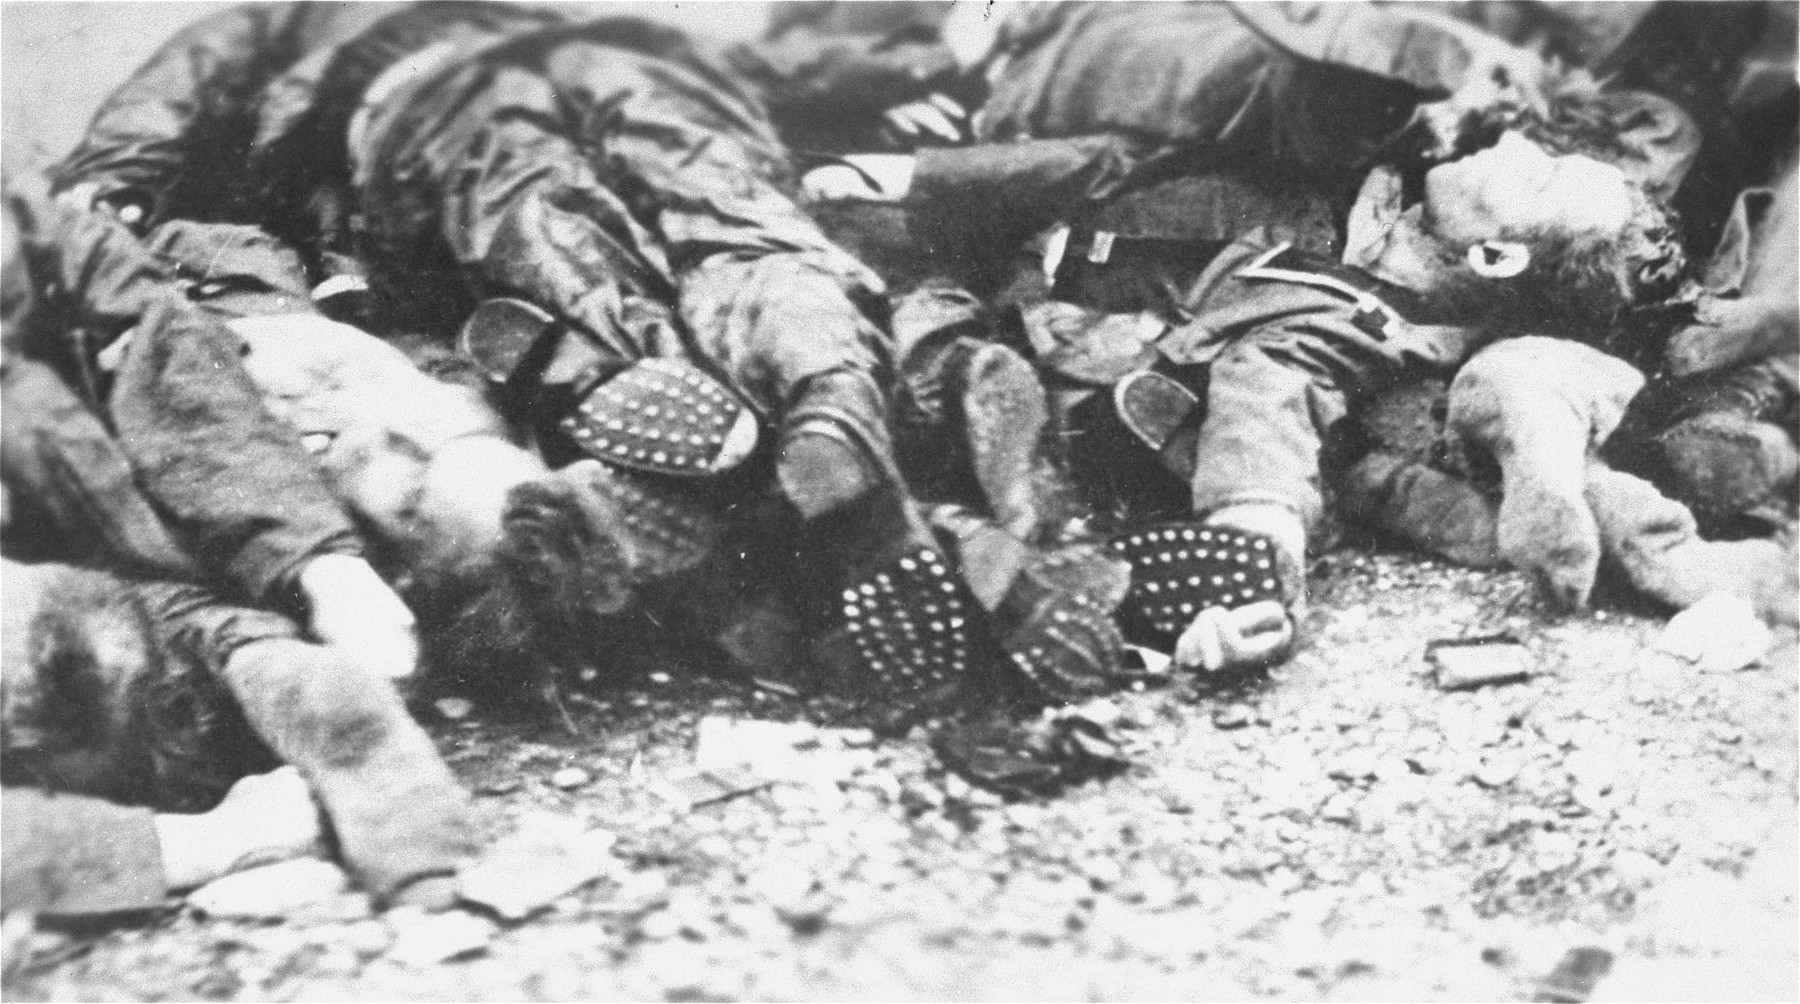 SS guards executed by American troops during the liberation of the camp.